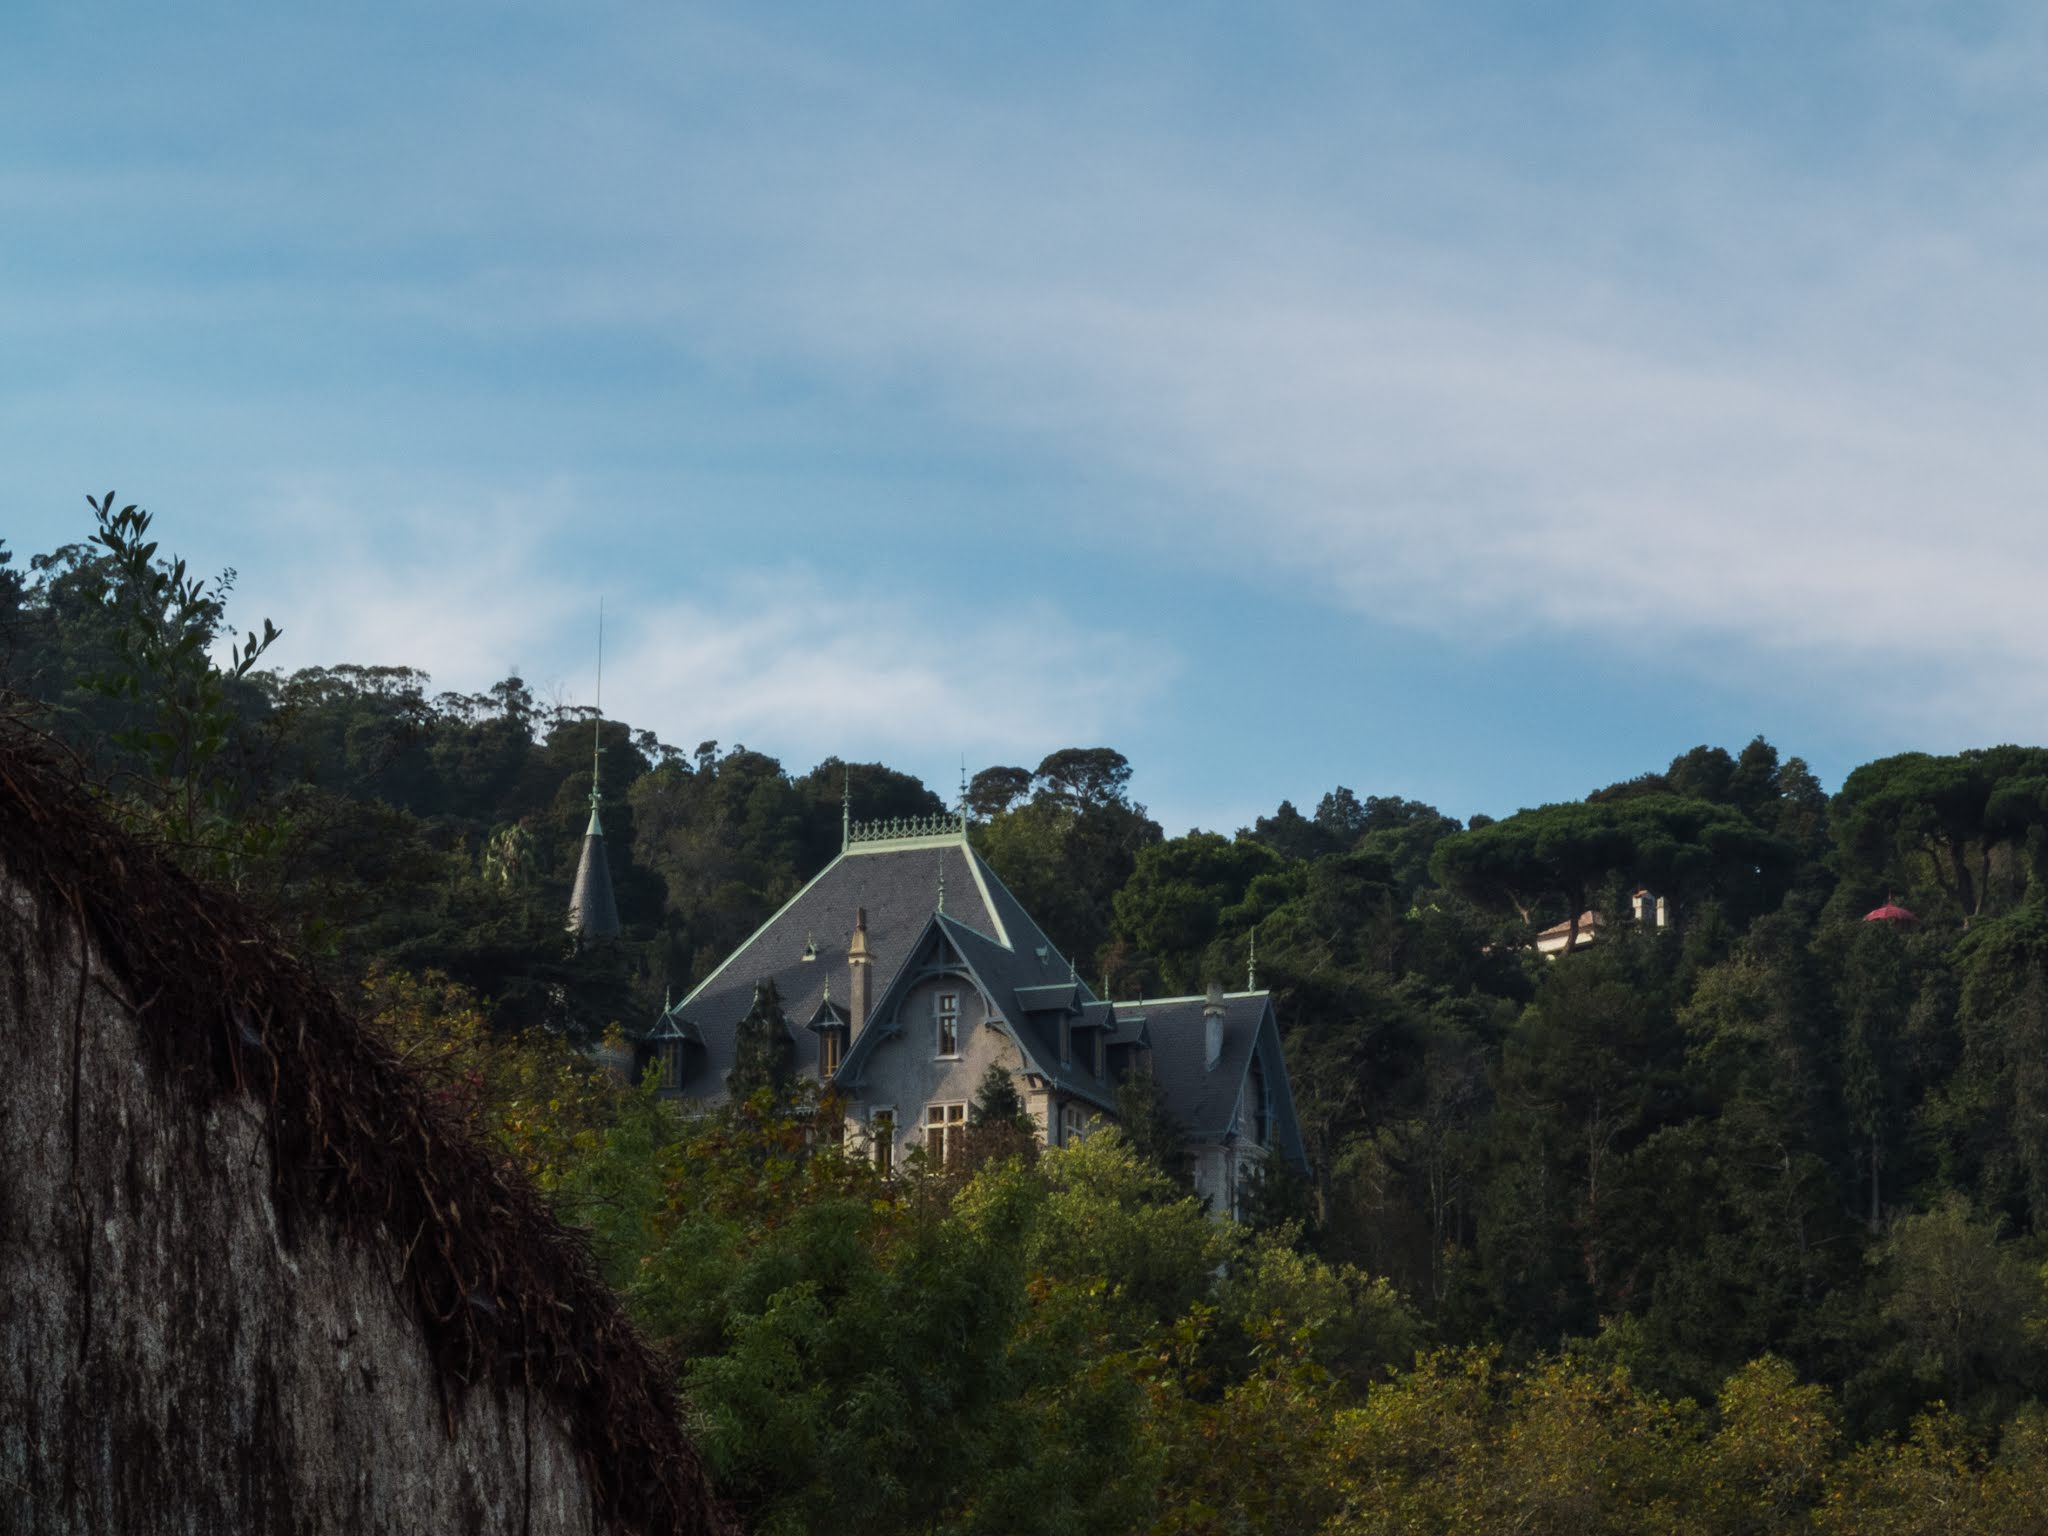 View of a hidden building nestled into the hillside in Sintra, Portugal.